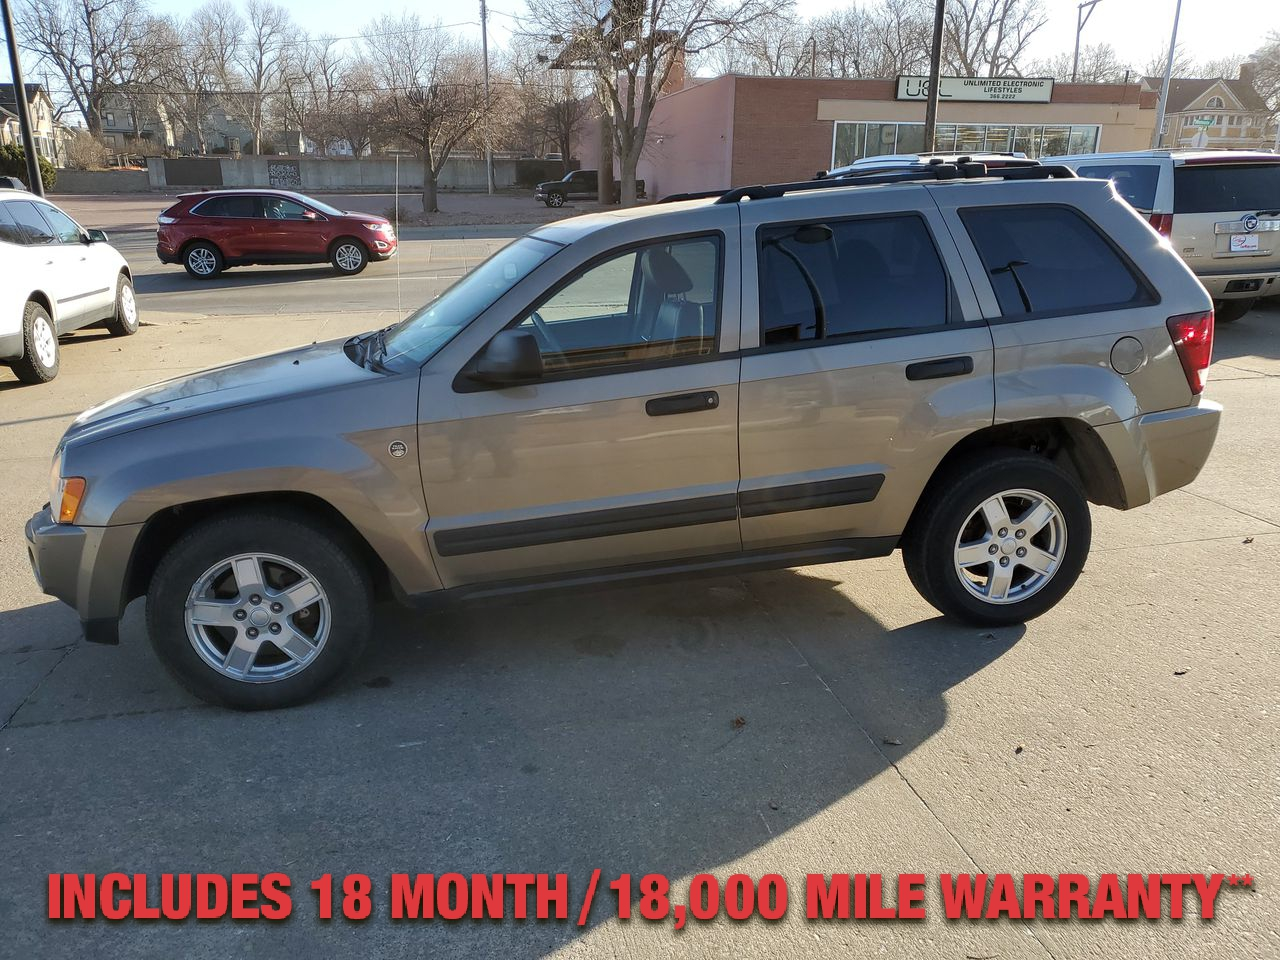 Pre-Owned 2005 JEEP GRAND CHEROKEE Laredo Spo